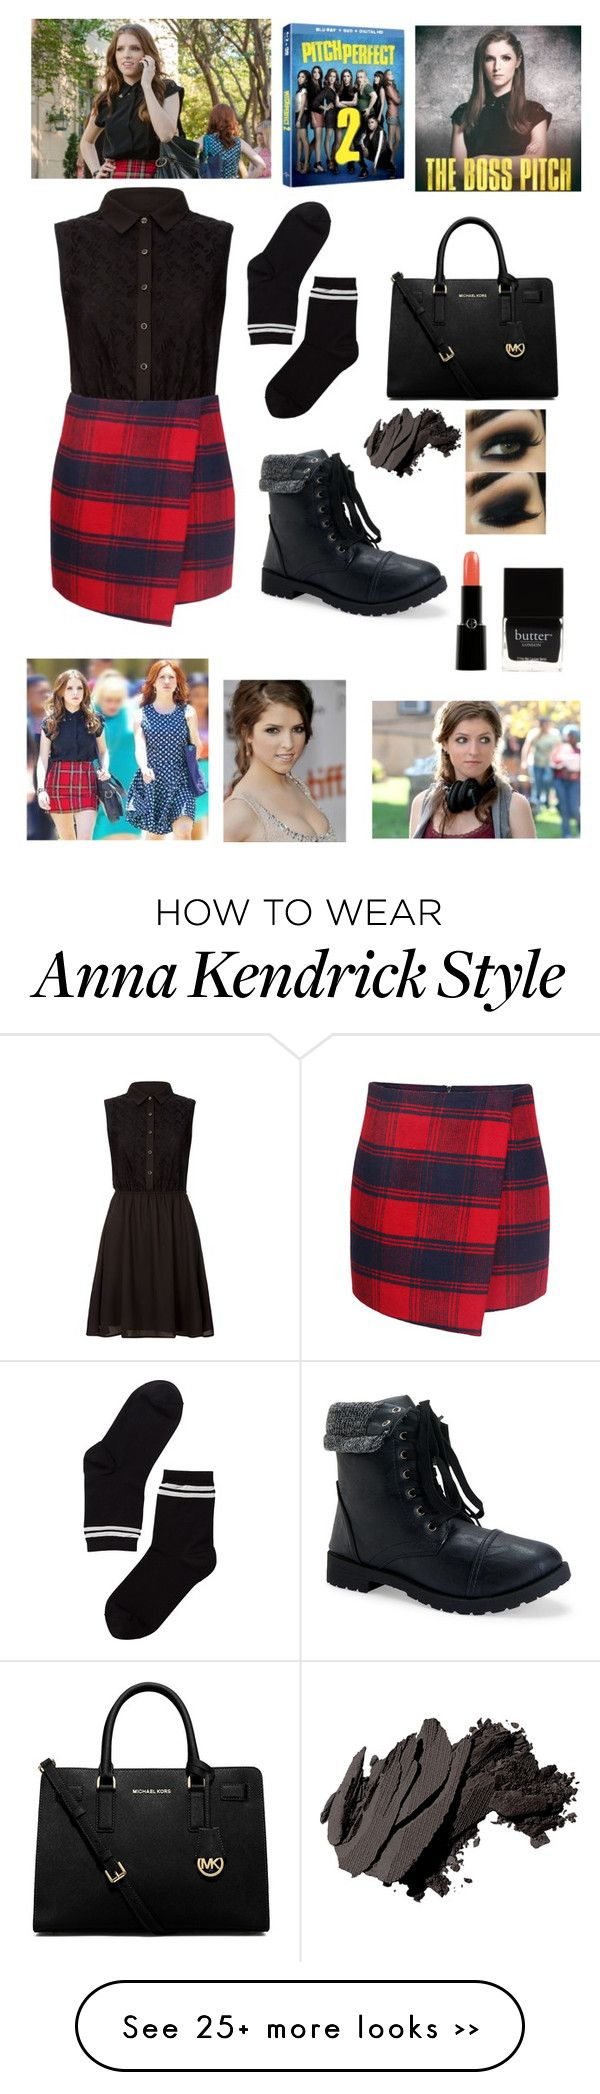 """pitch perfect remake outfit: becca"" by brynlieboo on Polyvore featuring Yumi, Aéropostale, Monki, MICHAEL Michael Kors, Bobbi Brown Cosmetics, Giorgio Armani, Butter London and pitchperfect2"